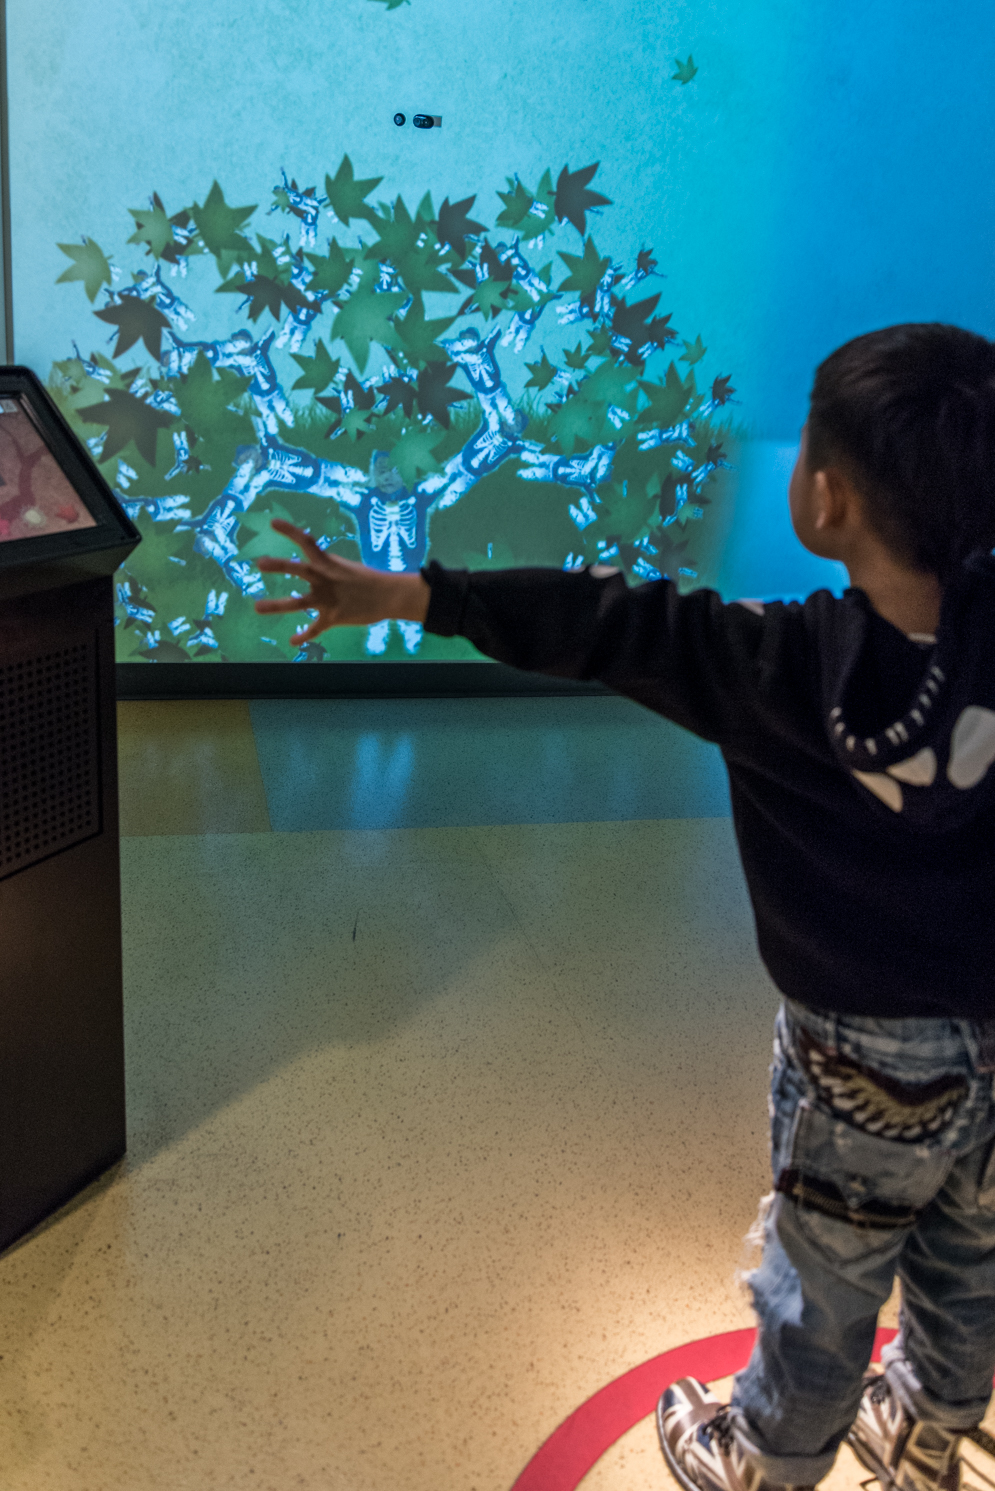 ROCK MAMA NYC LIFESTYLE BLOG - NATIONAL MUSEUM OF MATHEMATICS